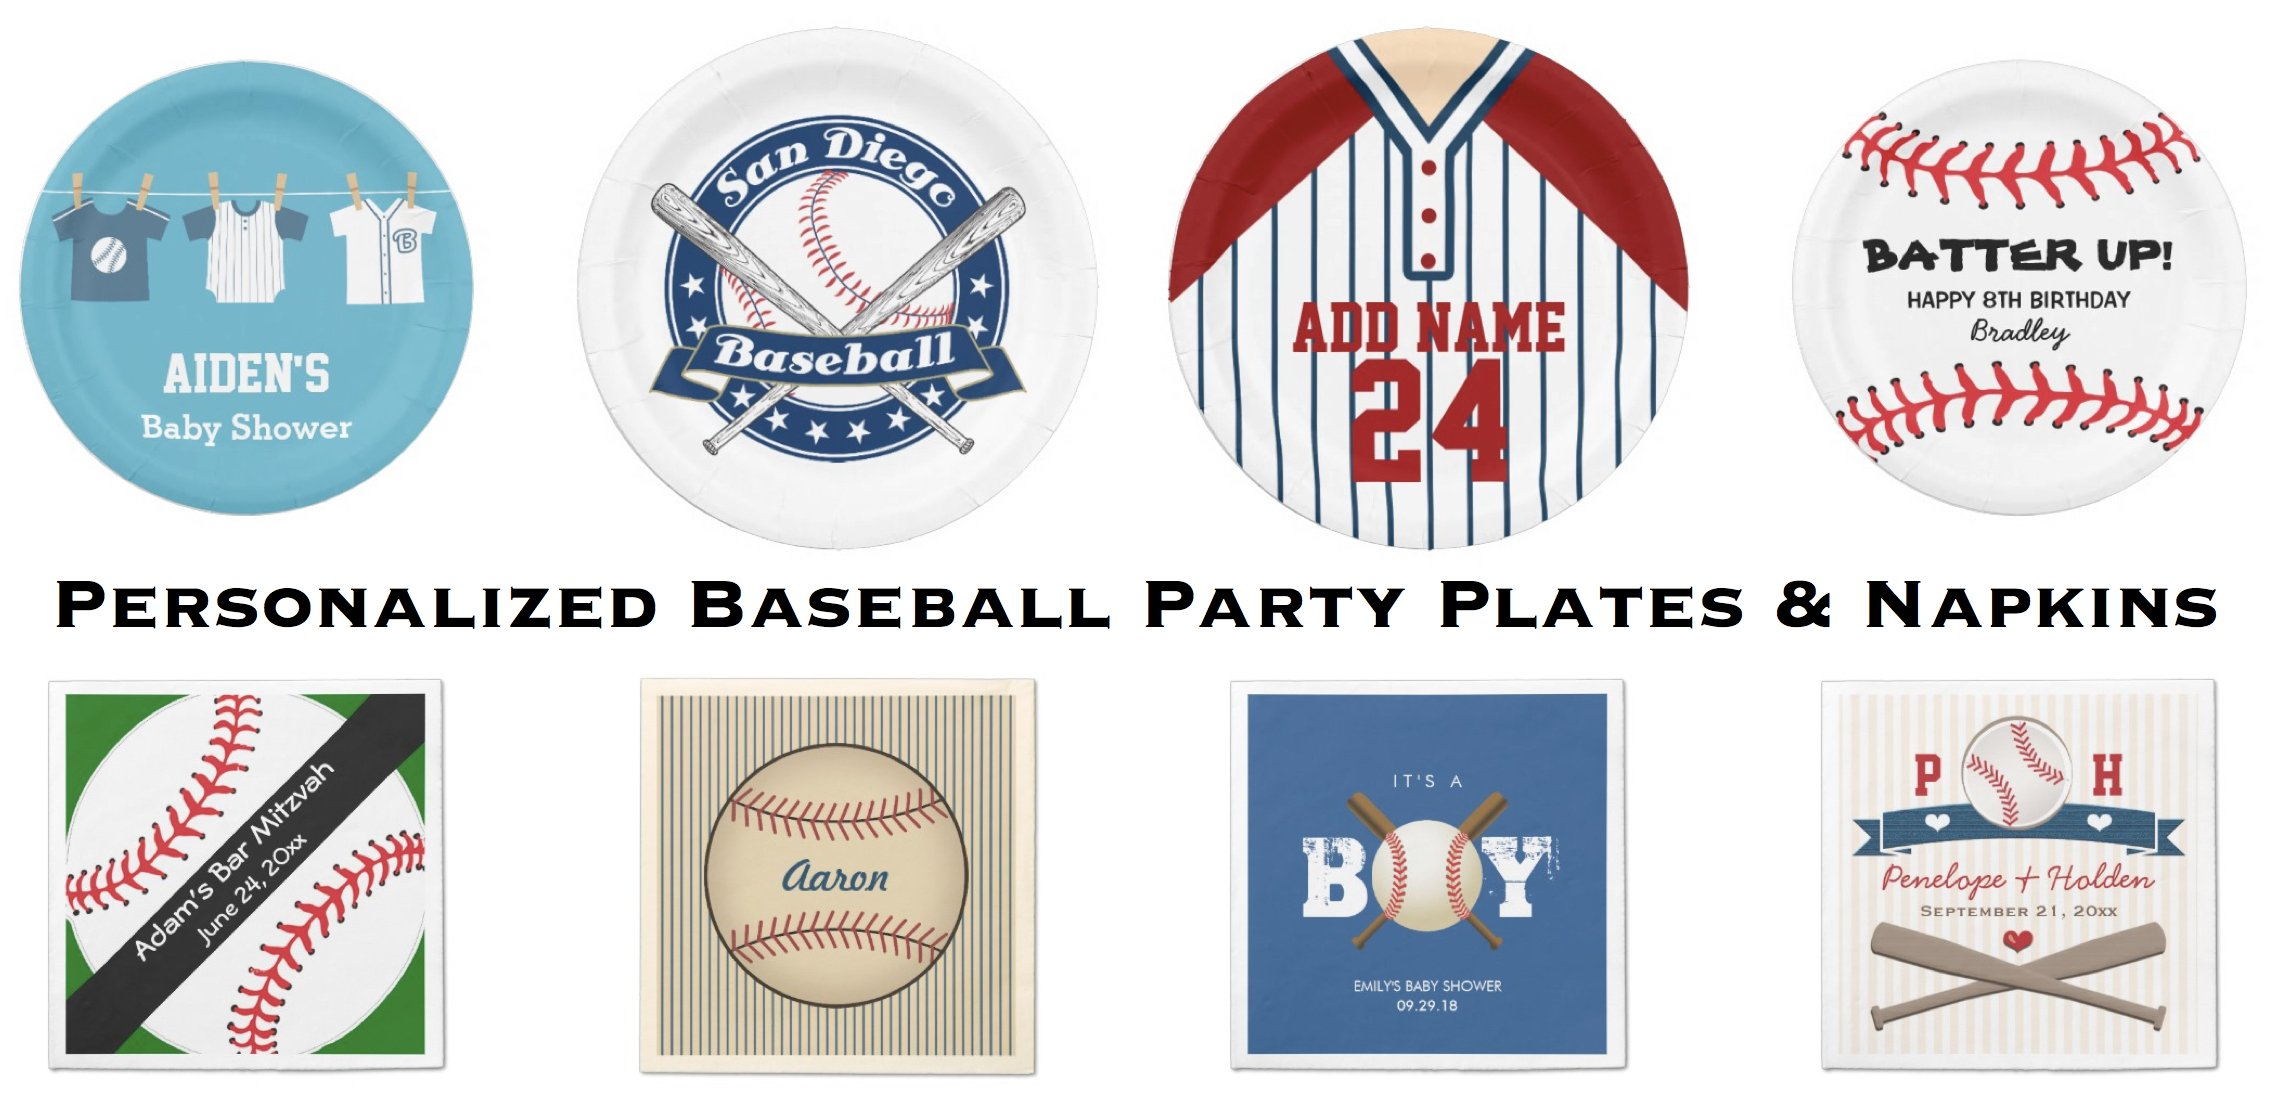 Personalized Baseball Party Plates & Napkins